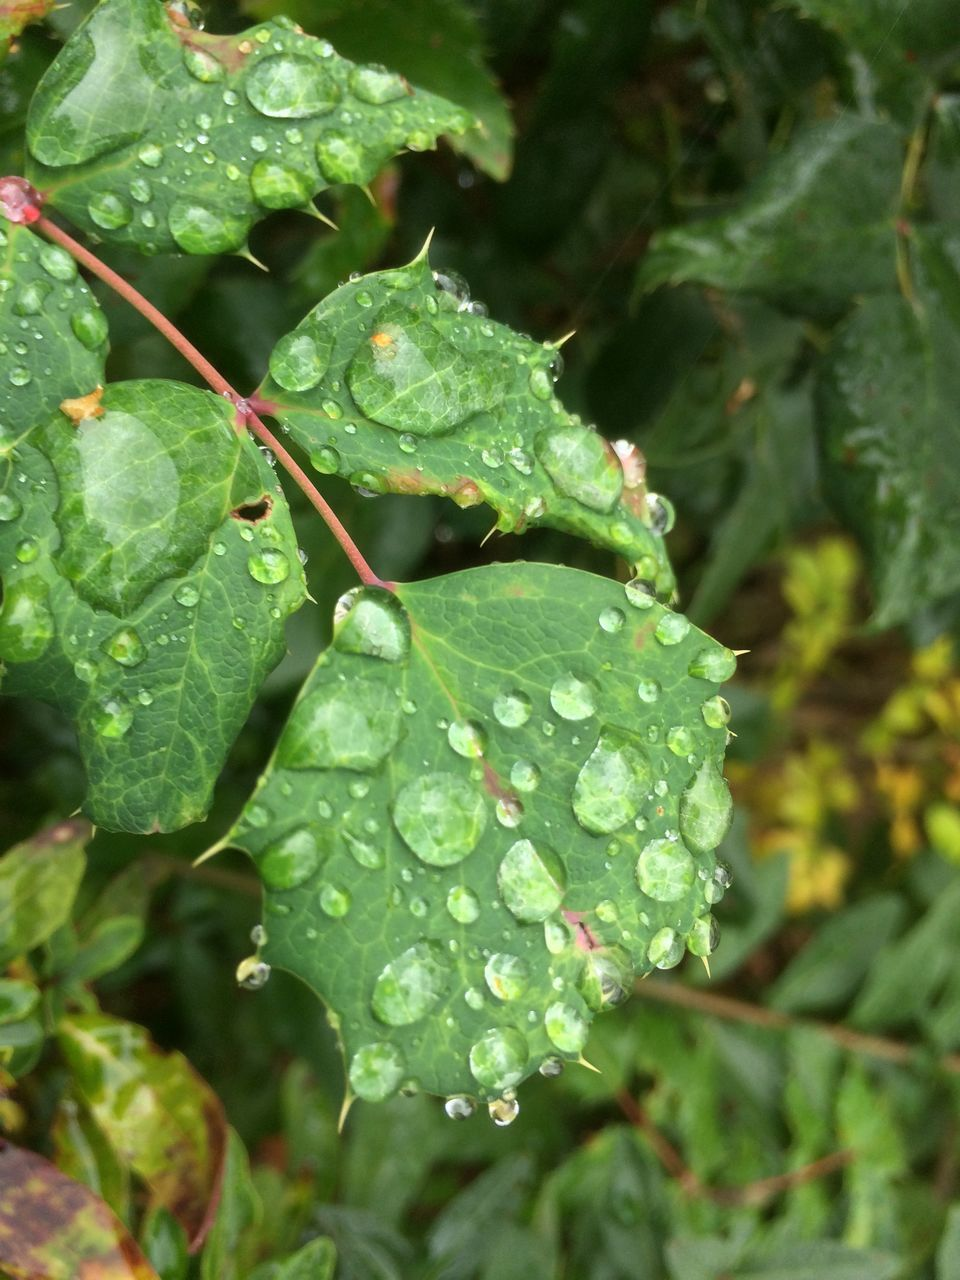 green color, leaf, drop, growth, water, nature, wet, close-up, day, plant, freshness, outdoors, raindrop, beauty in nature, no people, fragility